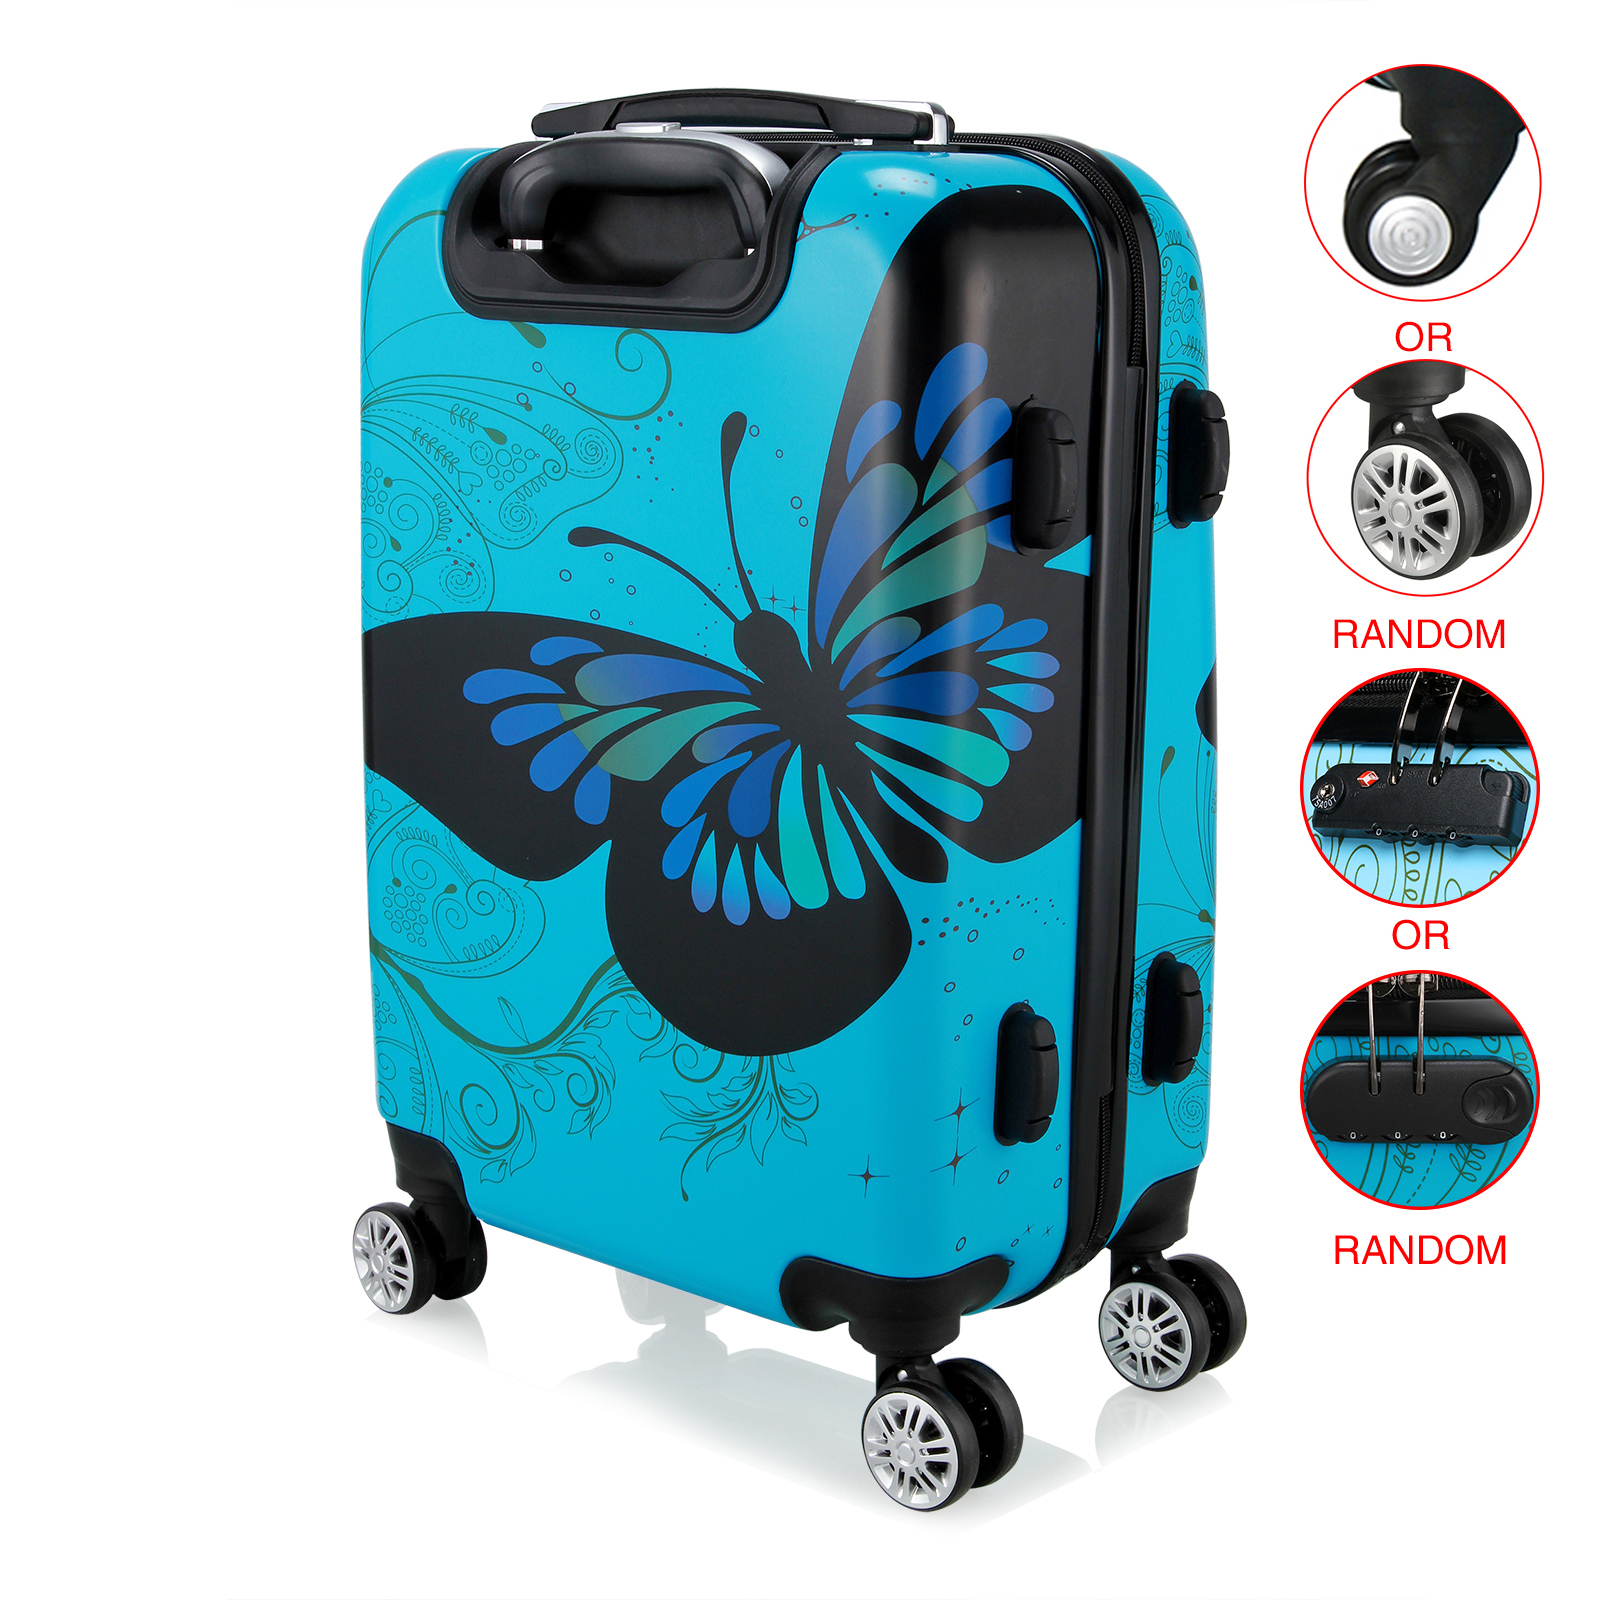 28 inch Unisex Trolley Luggage 4 Wheel Spinner Carry On Luggage Suitcase Butterfly PC Travel Trolley-in Rolling Luggage from Luggage & Bags    2